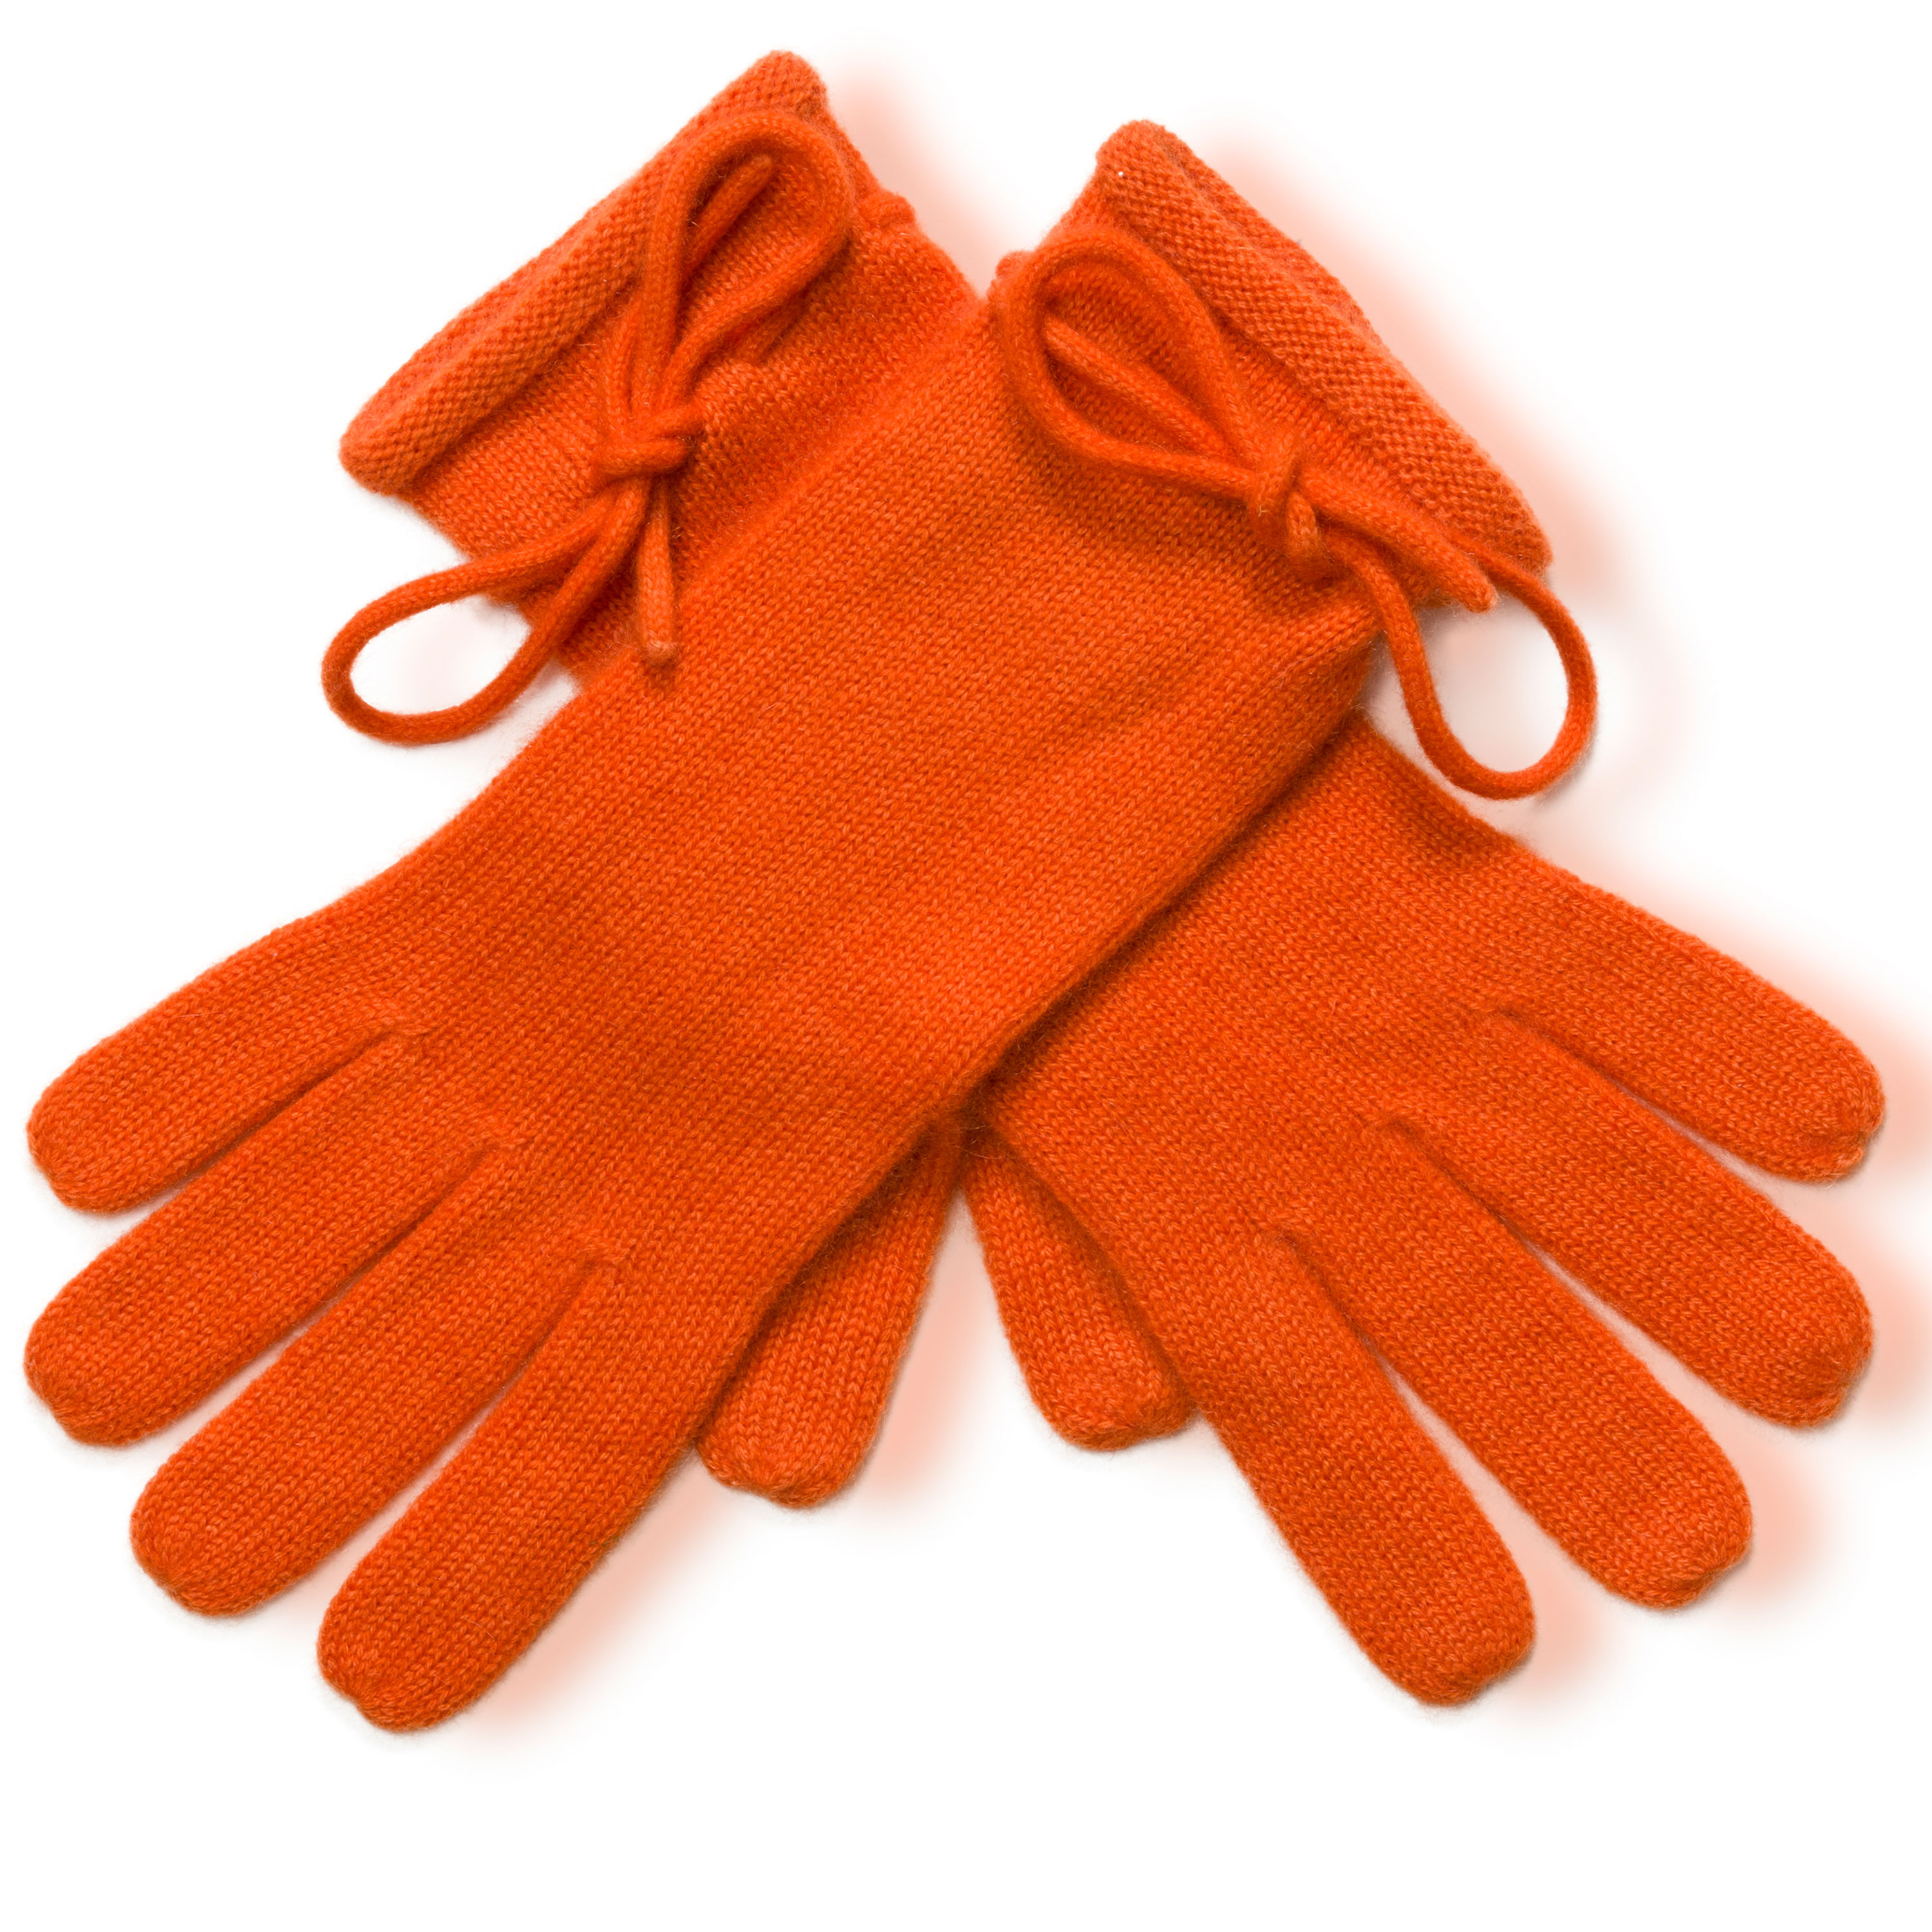 Ladies Cashmere Gloves With Wrist Tie - Harvest Pumpkin mp19